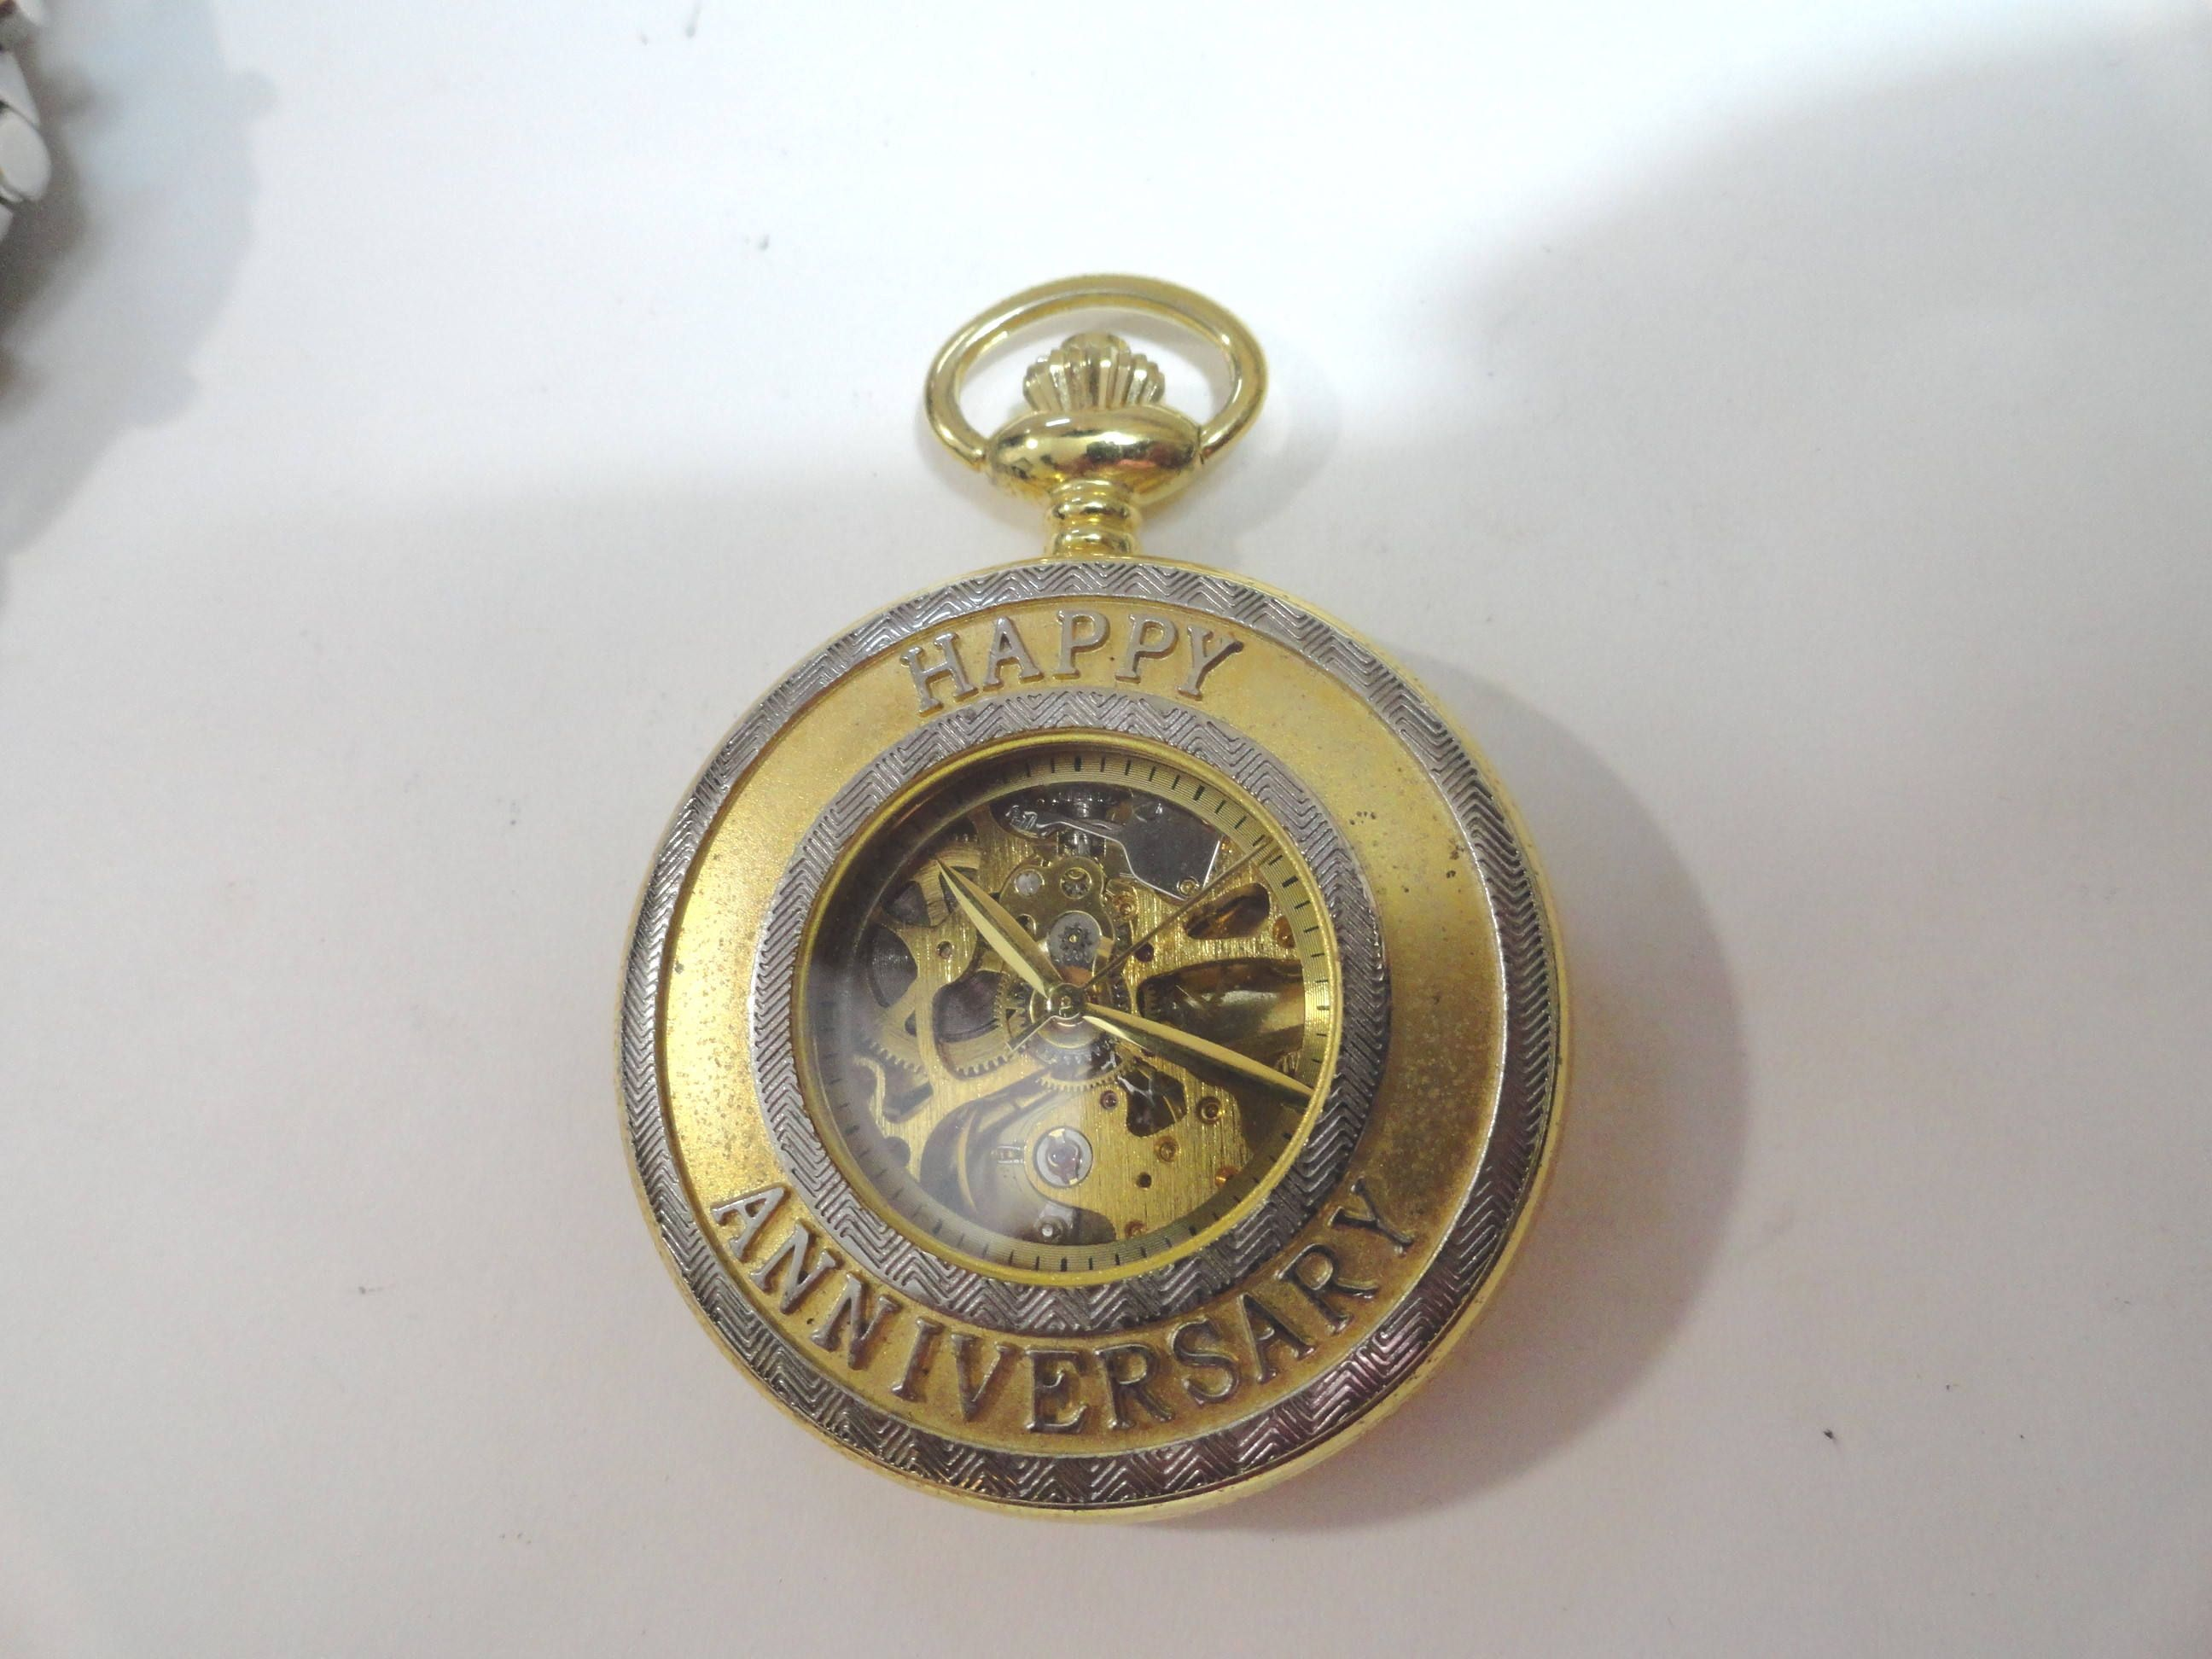 Vintage Majesti Skeleton Pocket Watch Happy Anniversary Running 45mm by KayesVintageJewelry on Etsy